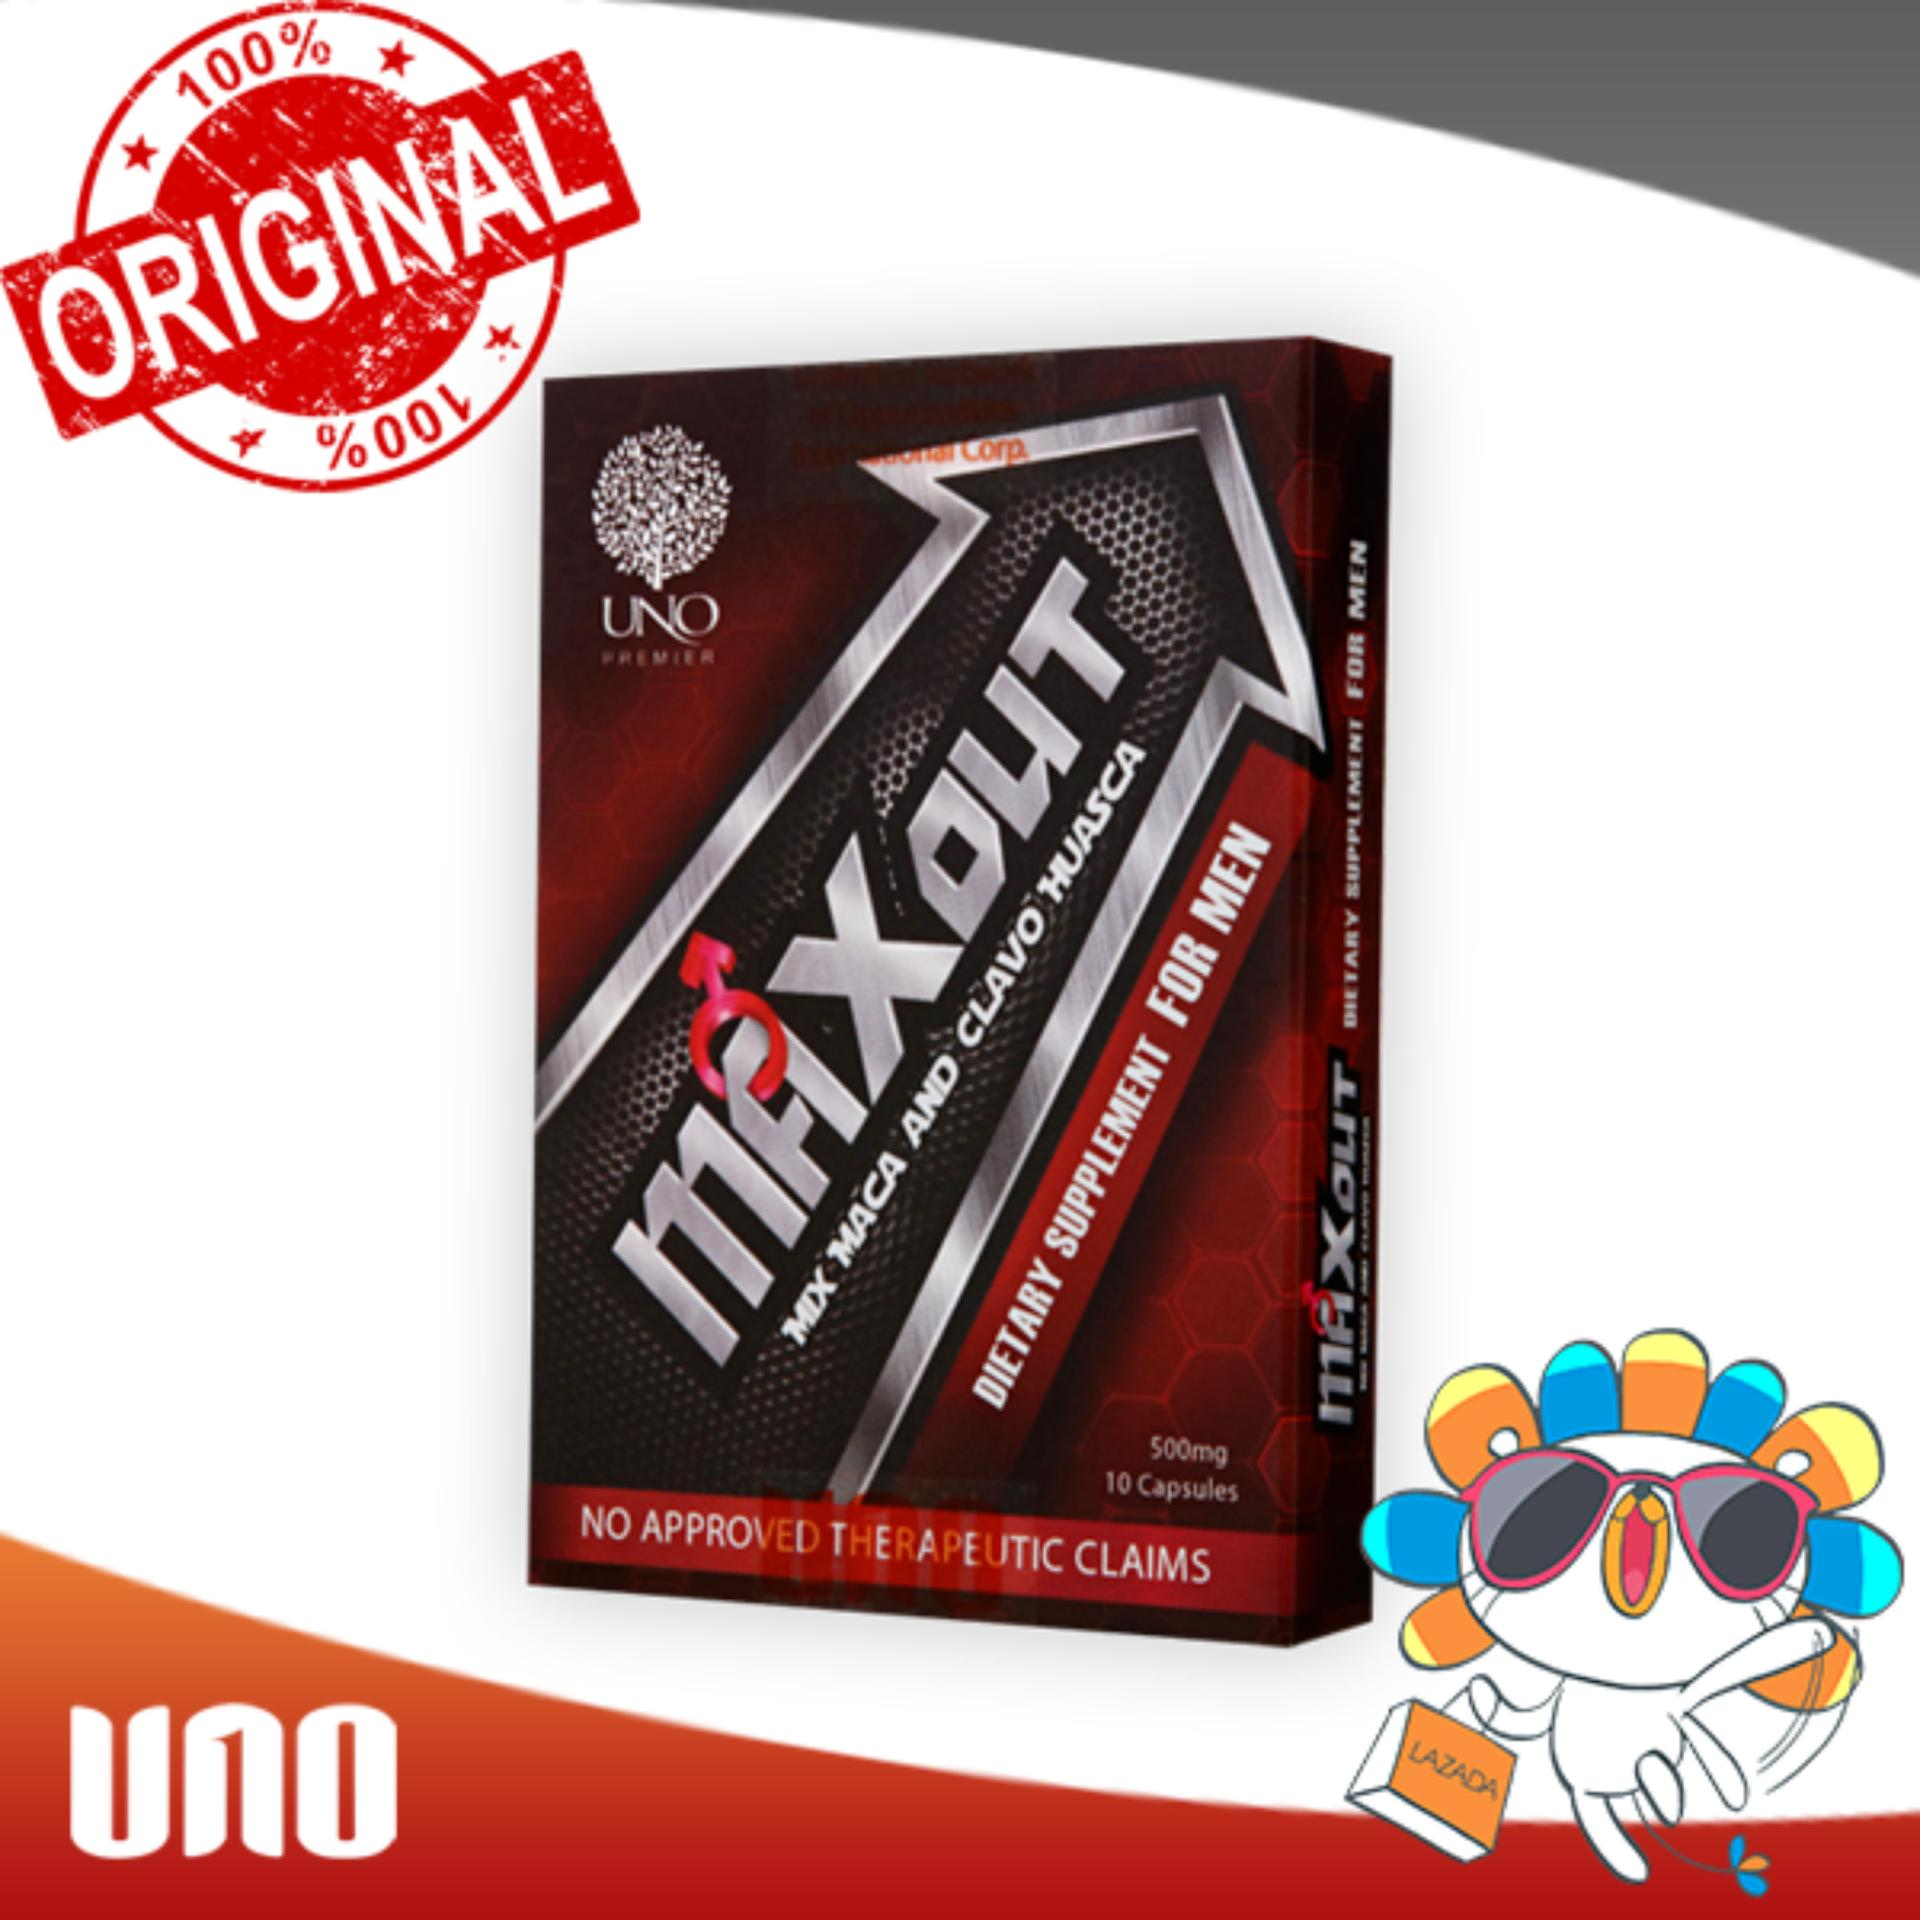 UNO Original MAX-OUT 10 Capsules maxout natural boost men performance